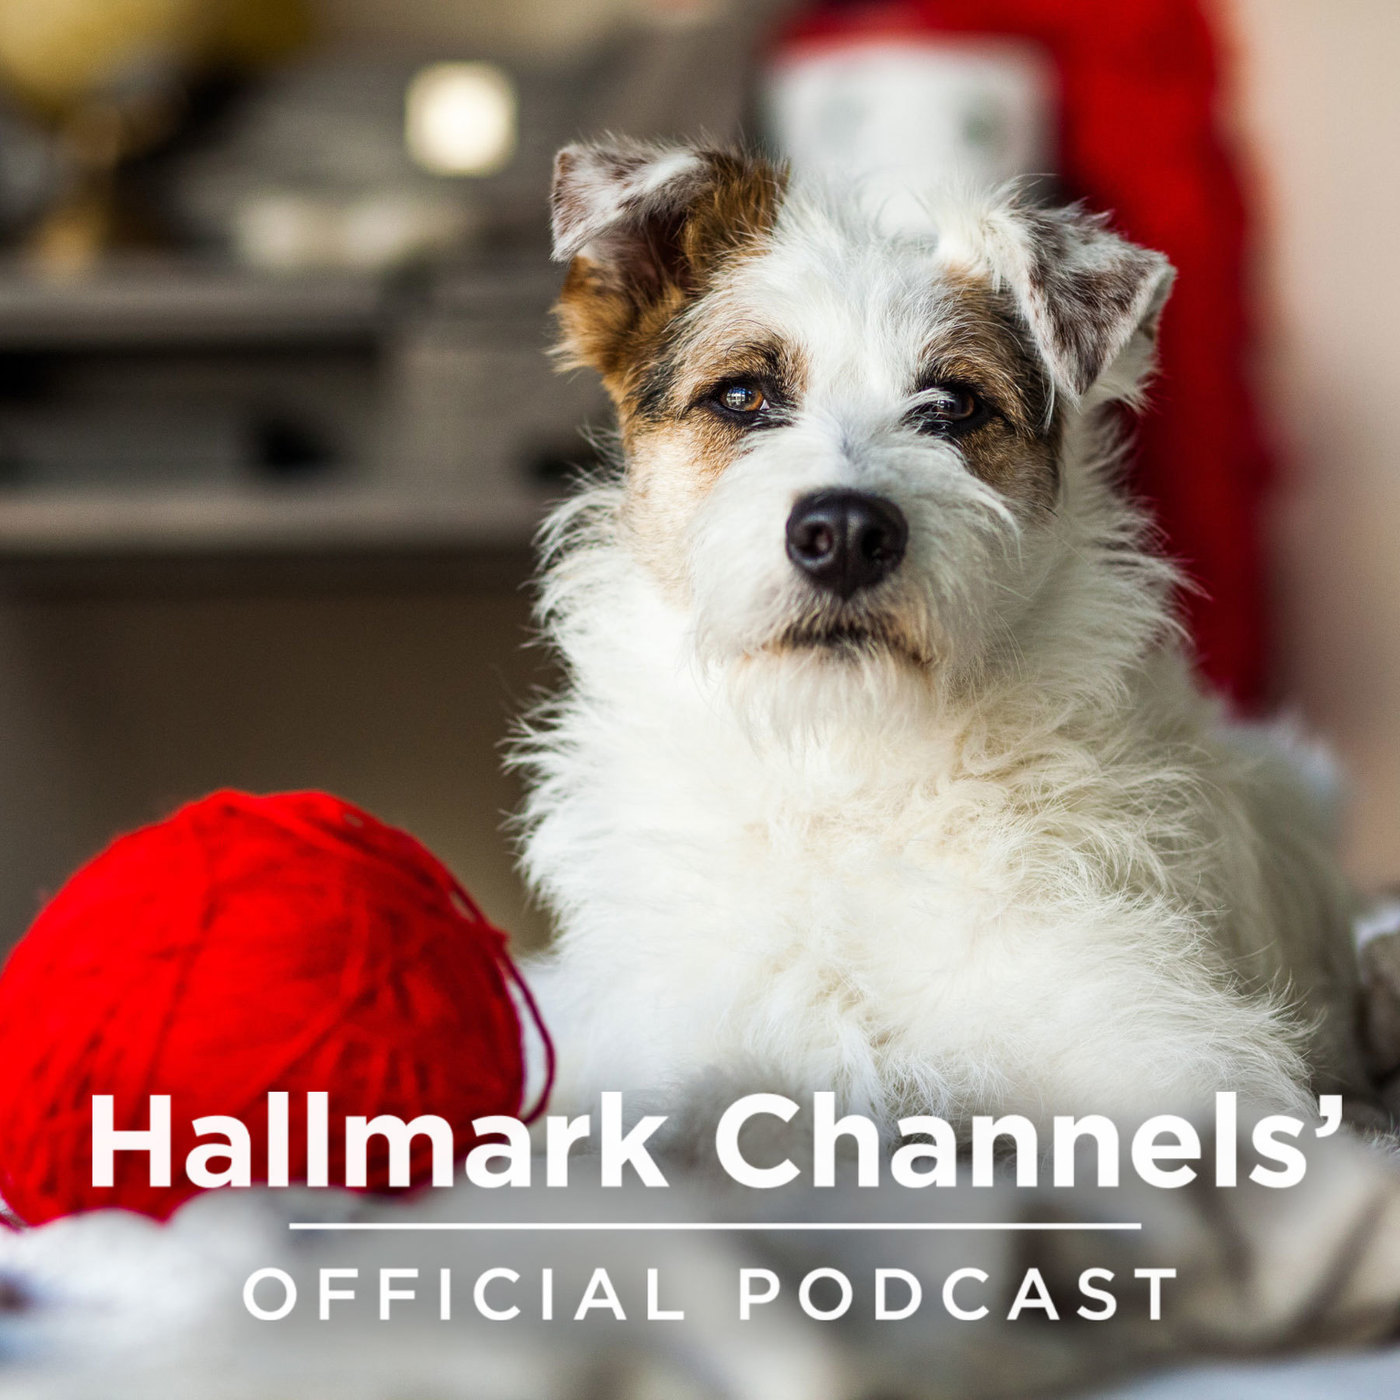 Hallmark Channels' Official Podcast: Adoption Ever After